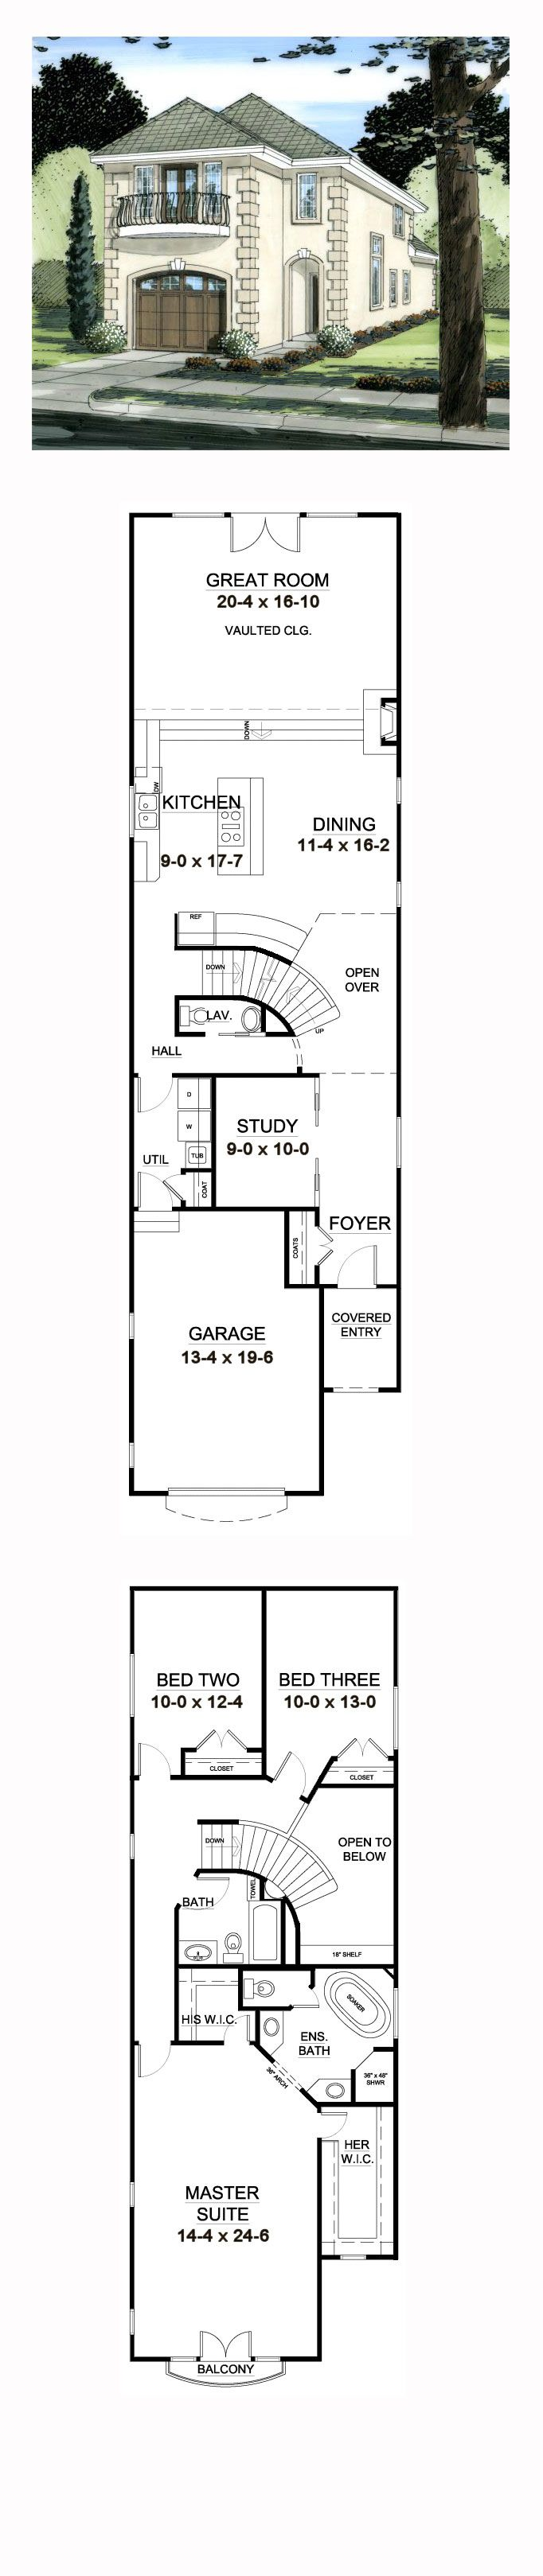 526 best floor plans sims3 images on pinterest house floor florida house plan 99997